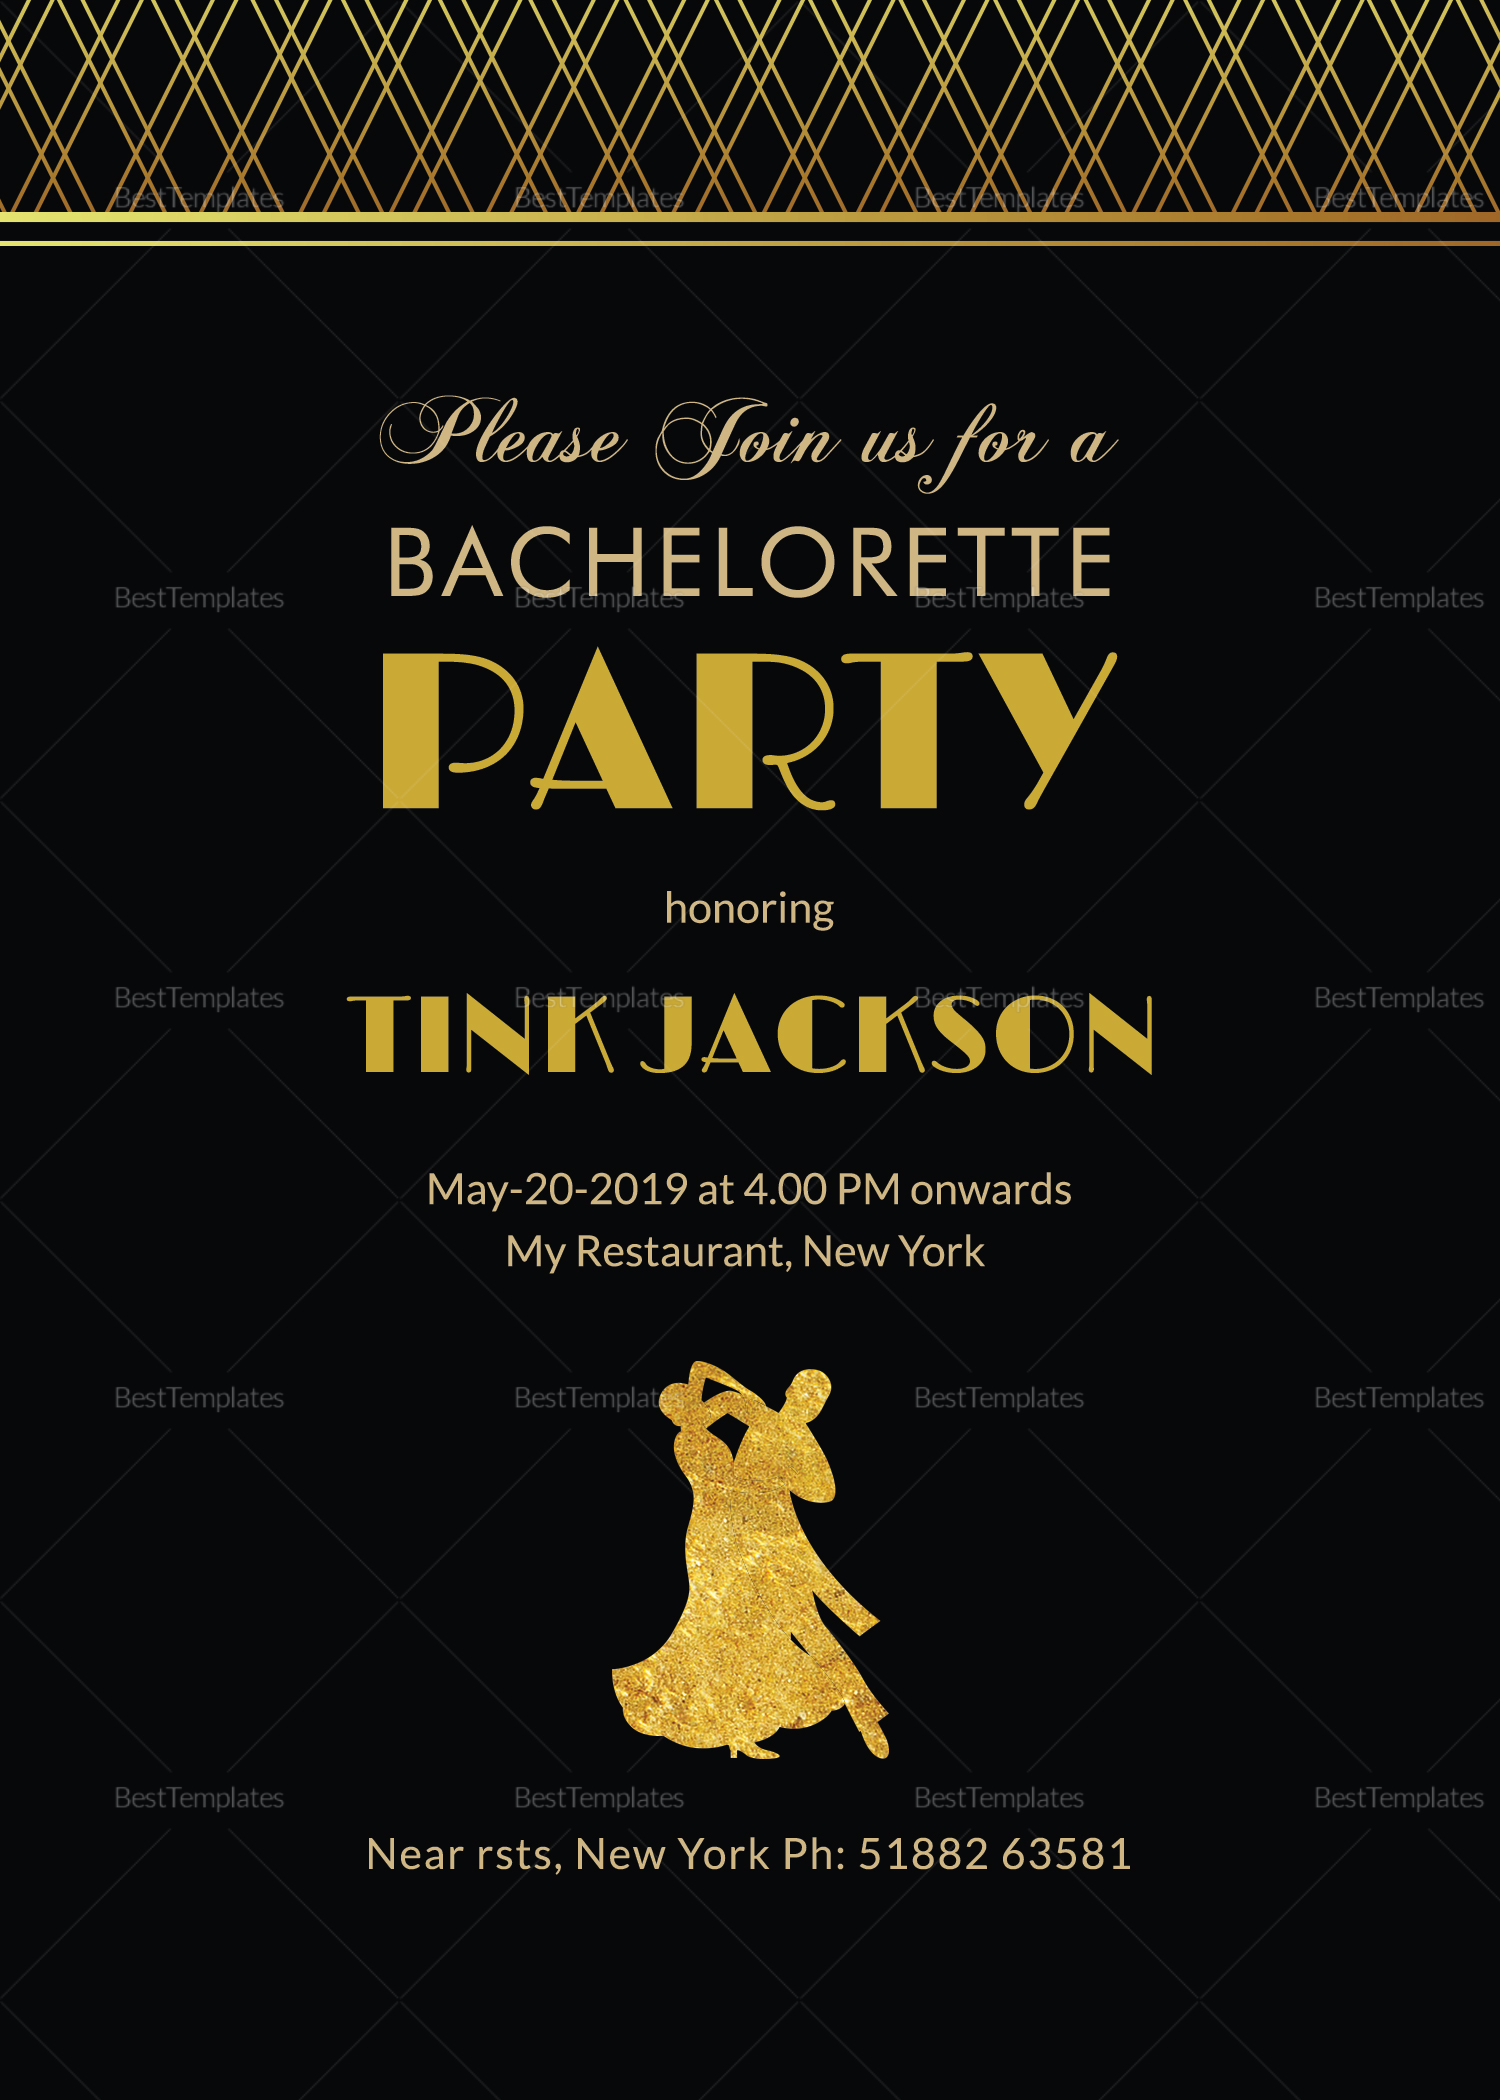 Black & Gold Bachelorette Party Invitation Design Template